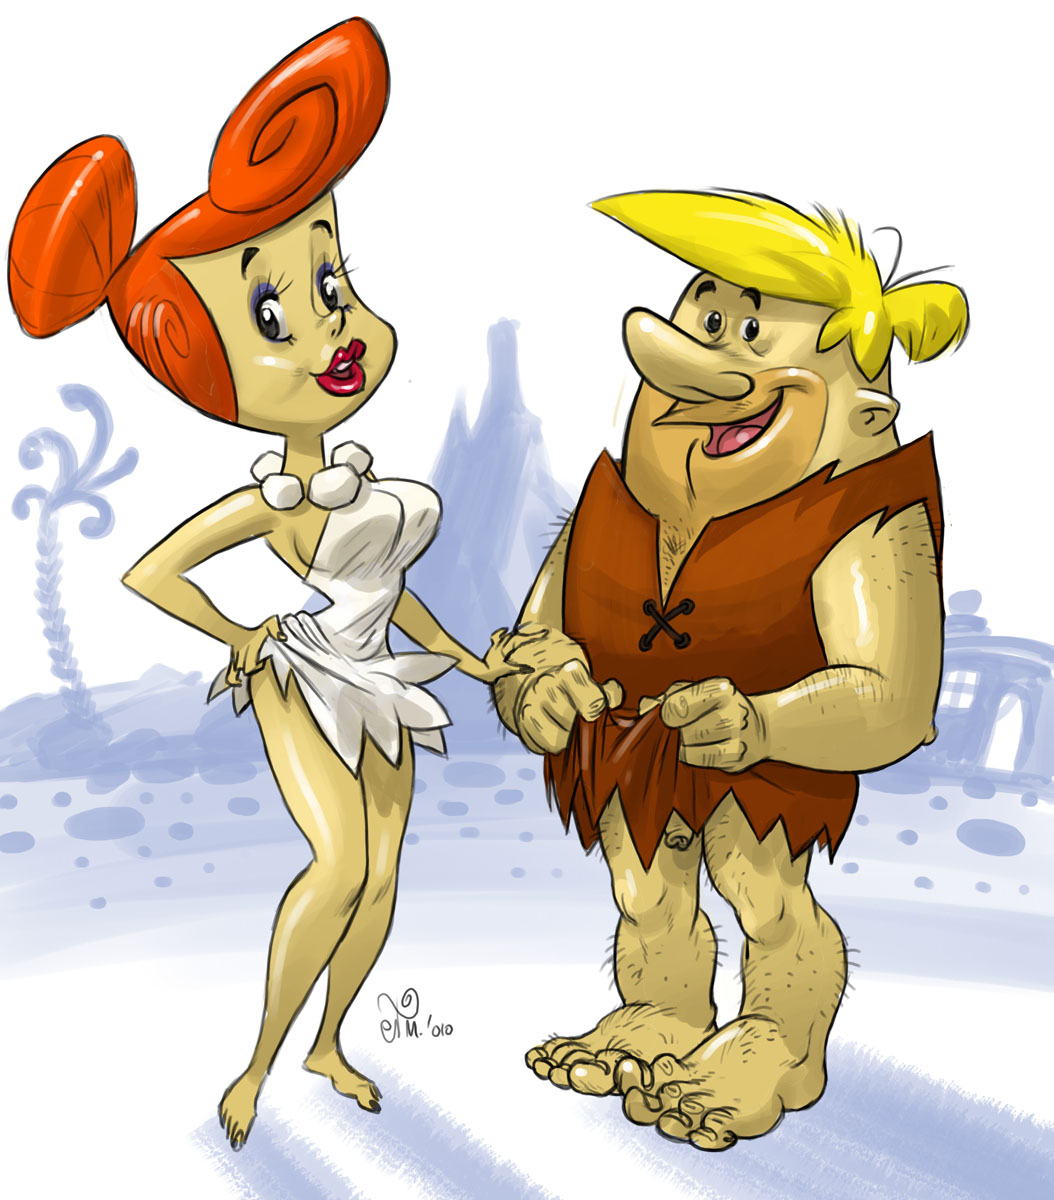 nude-images-of-wilma-from-flintstones-japanese-vs-chinese-nude